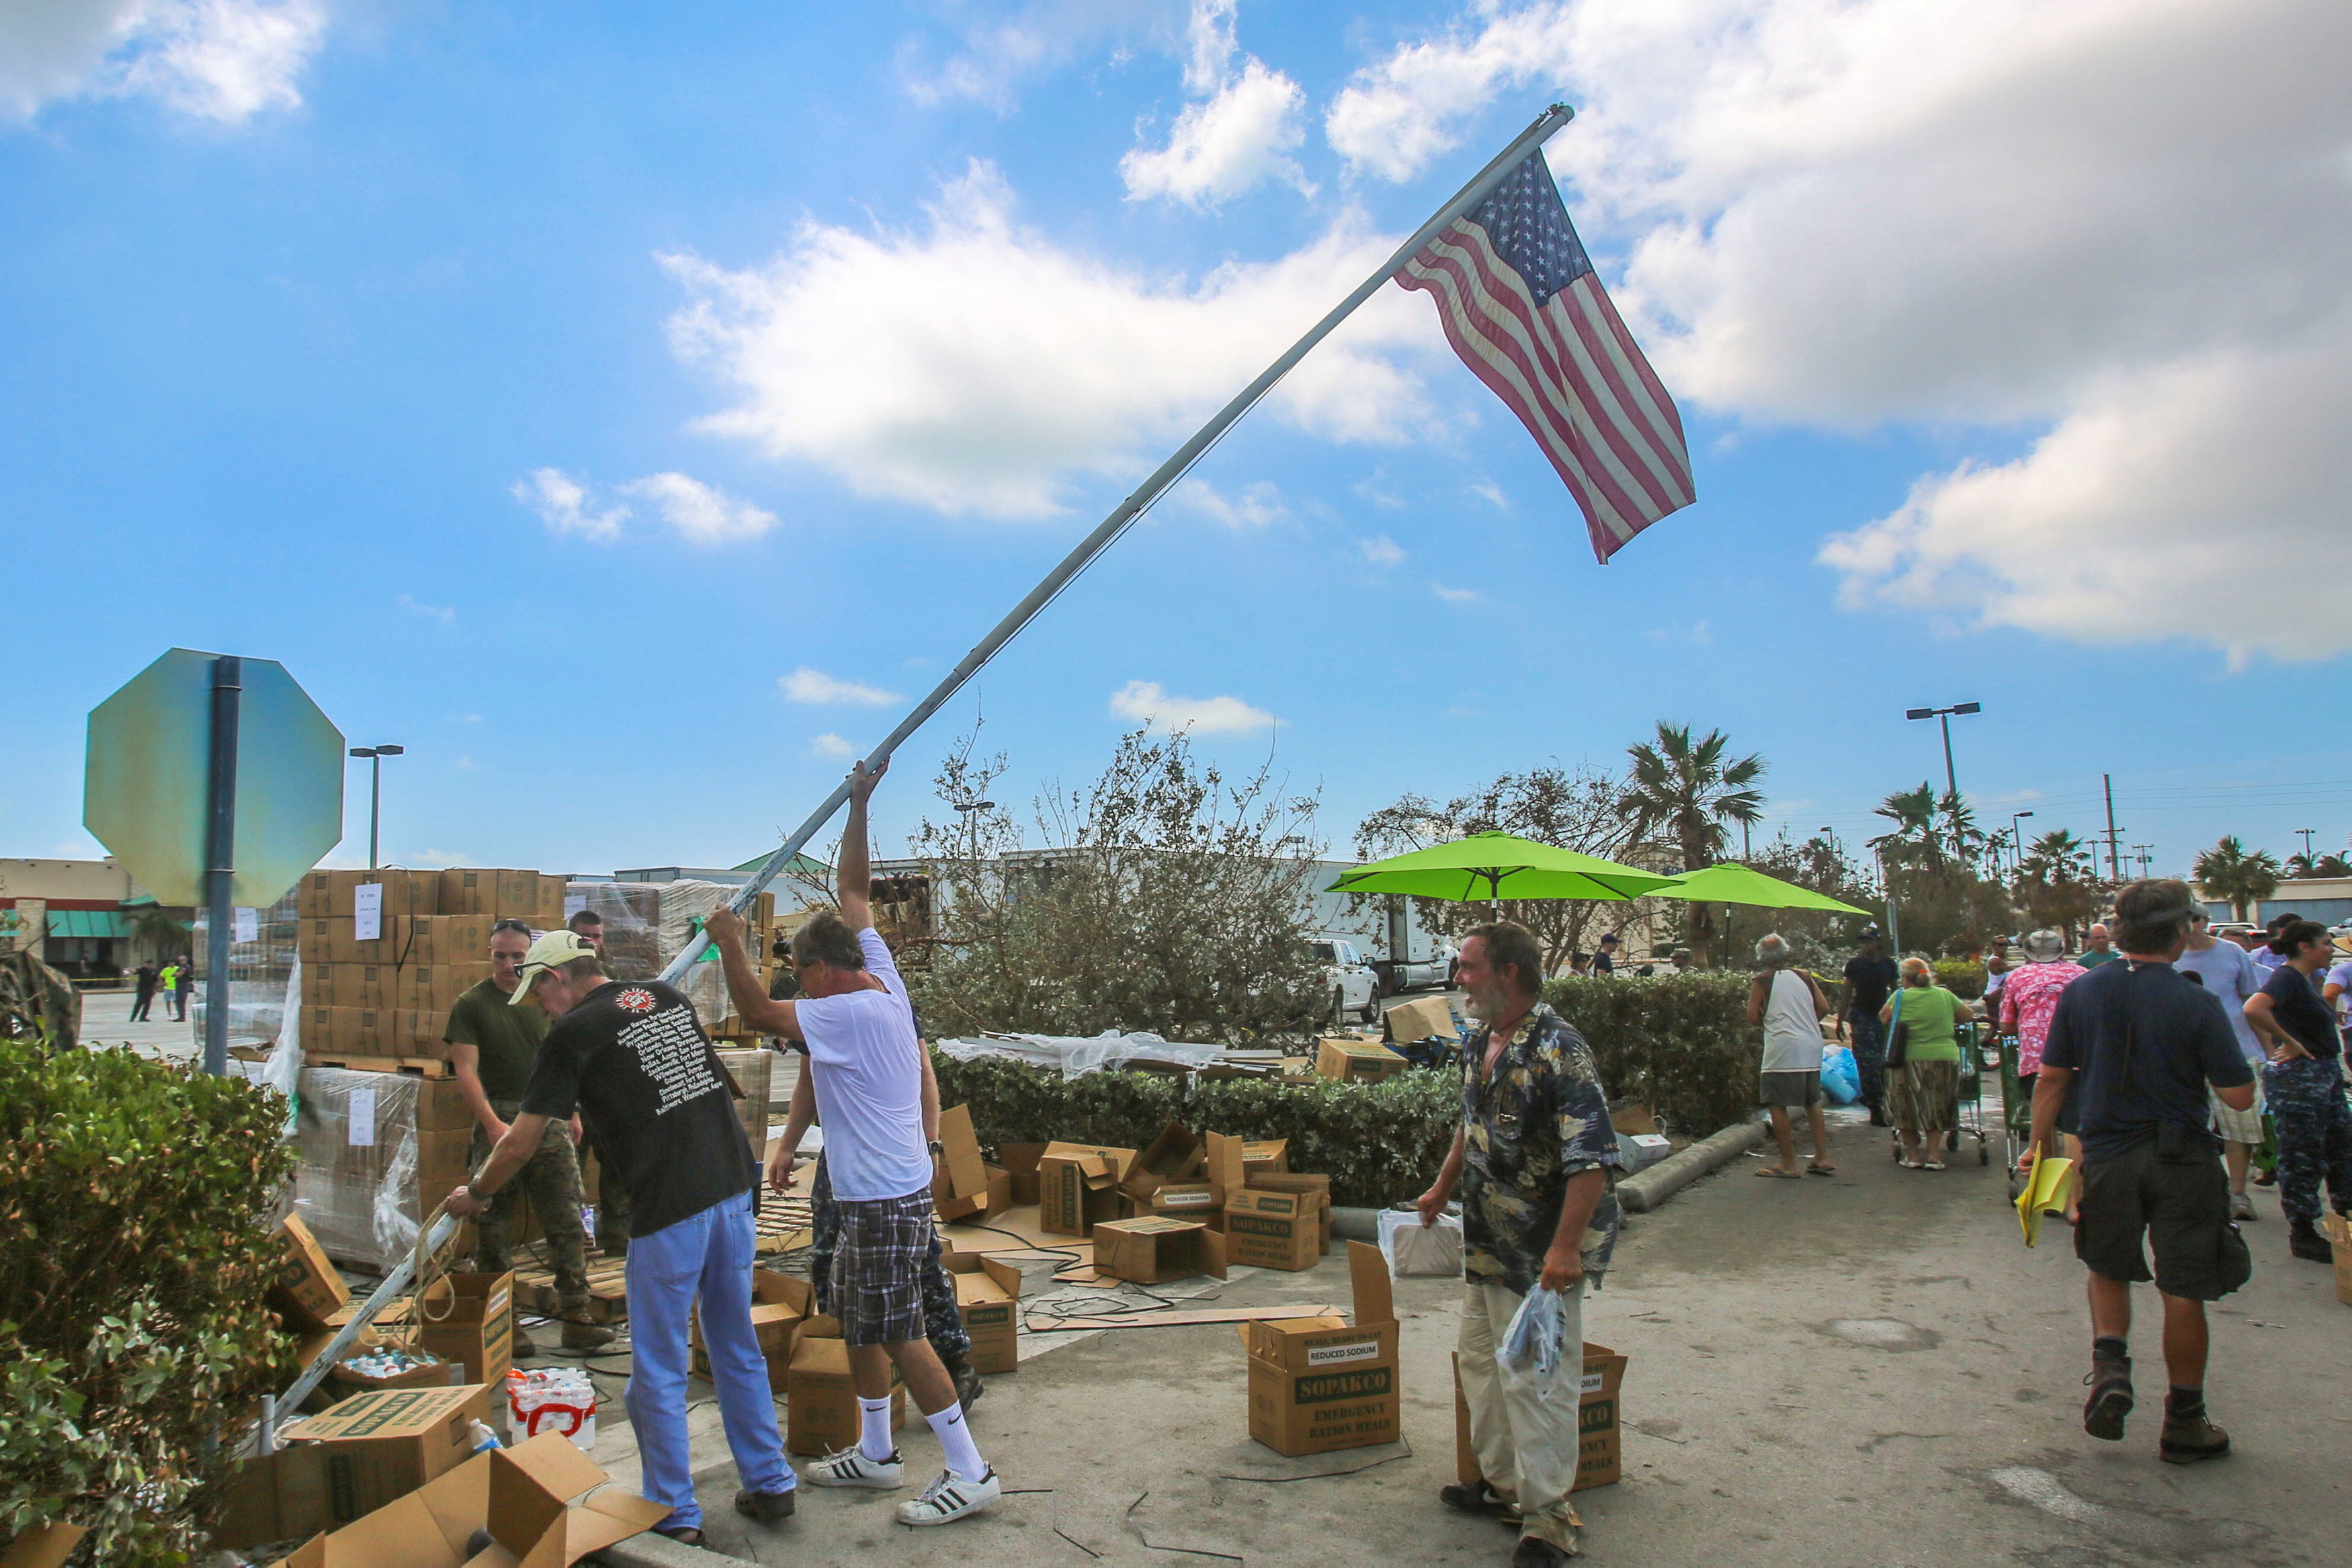 About 1.5 million, mostly in Florida, without power in Irma's wake